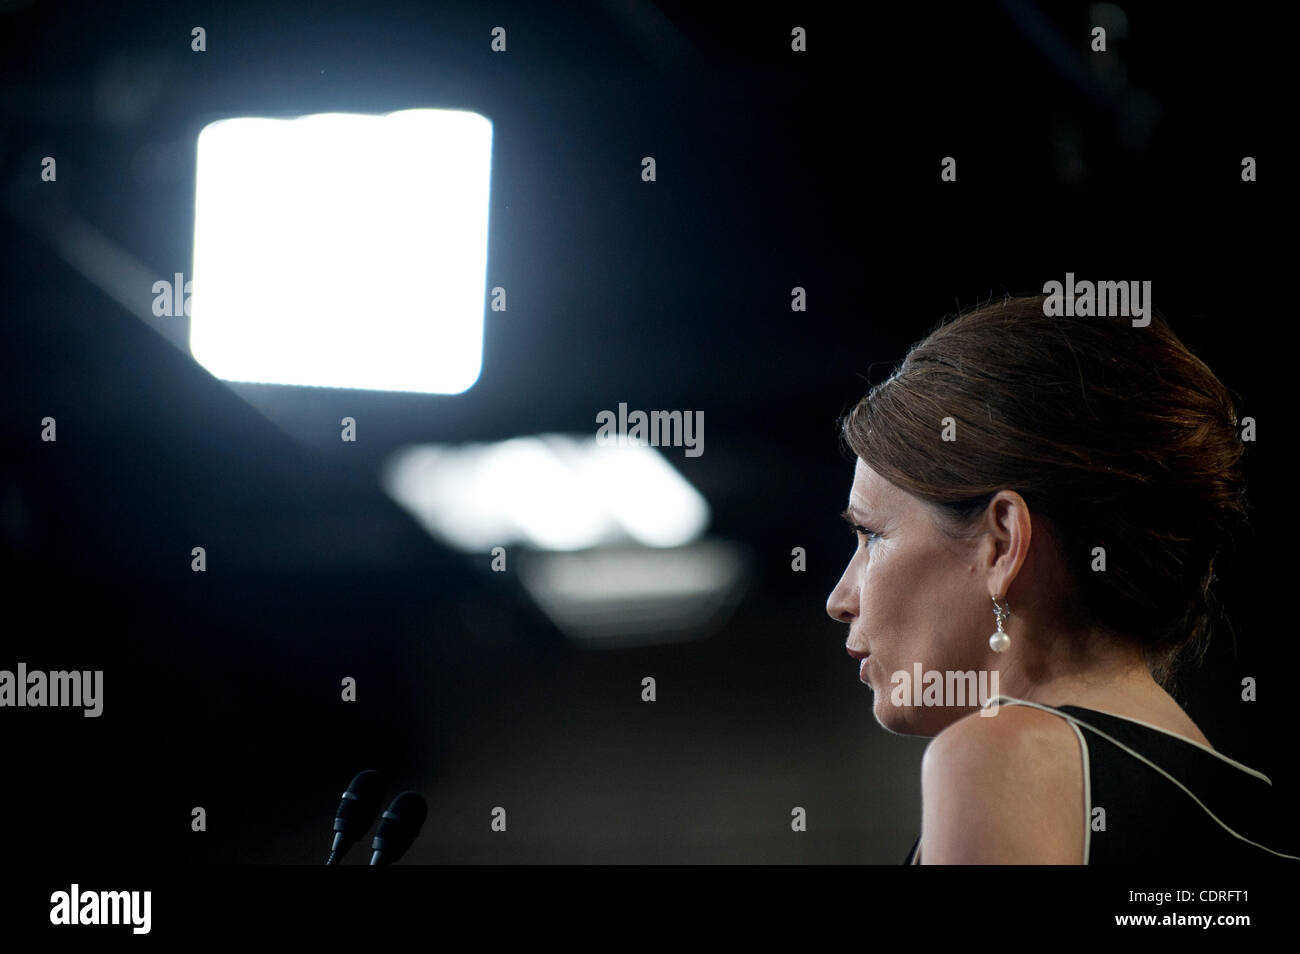 July 13, 2011 - Washington, District of Columbia, U.S. - Rep. MICHELE BACHMANN (R-MN) at  a news conference on Capitol - Stock Image